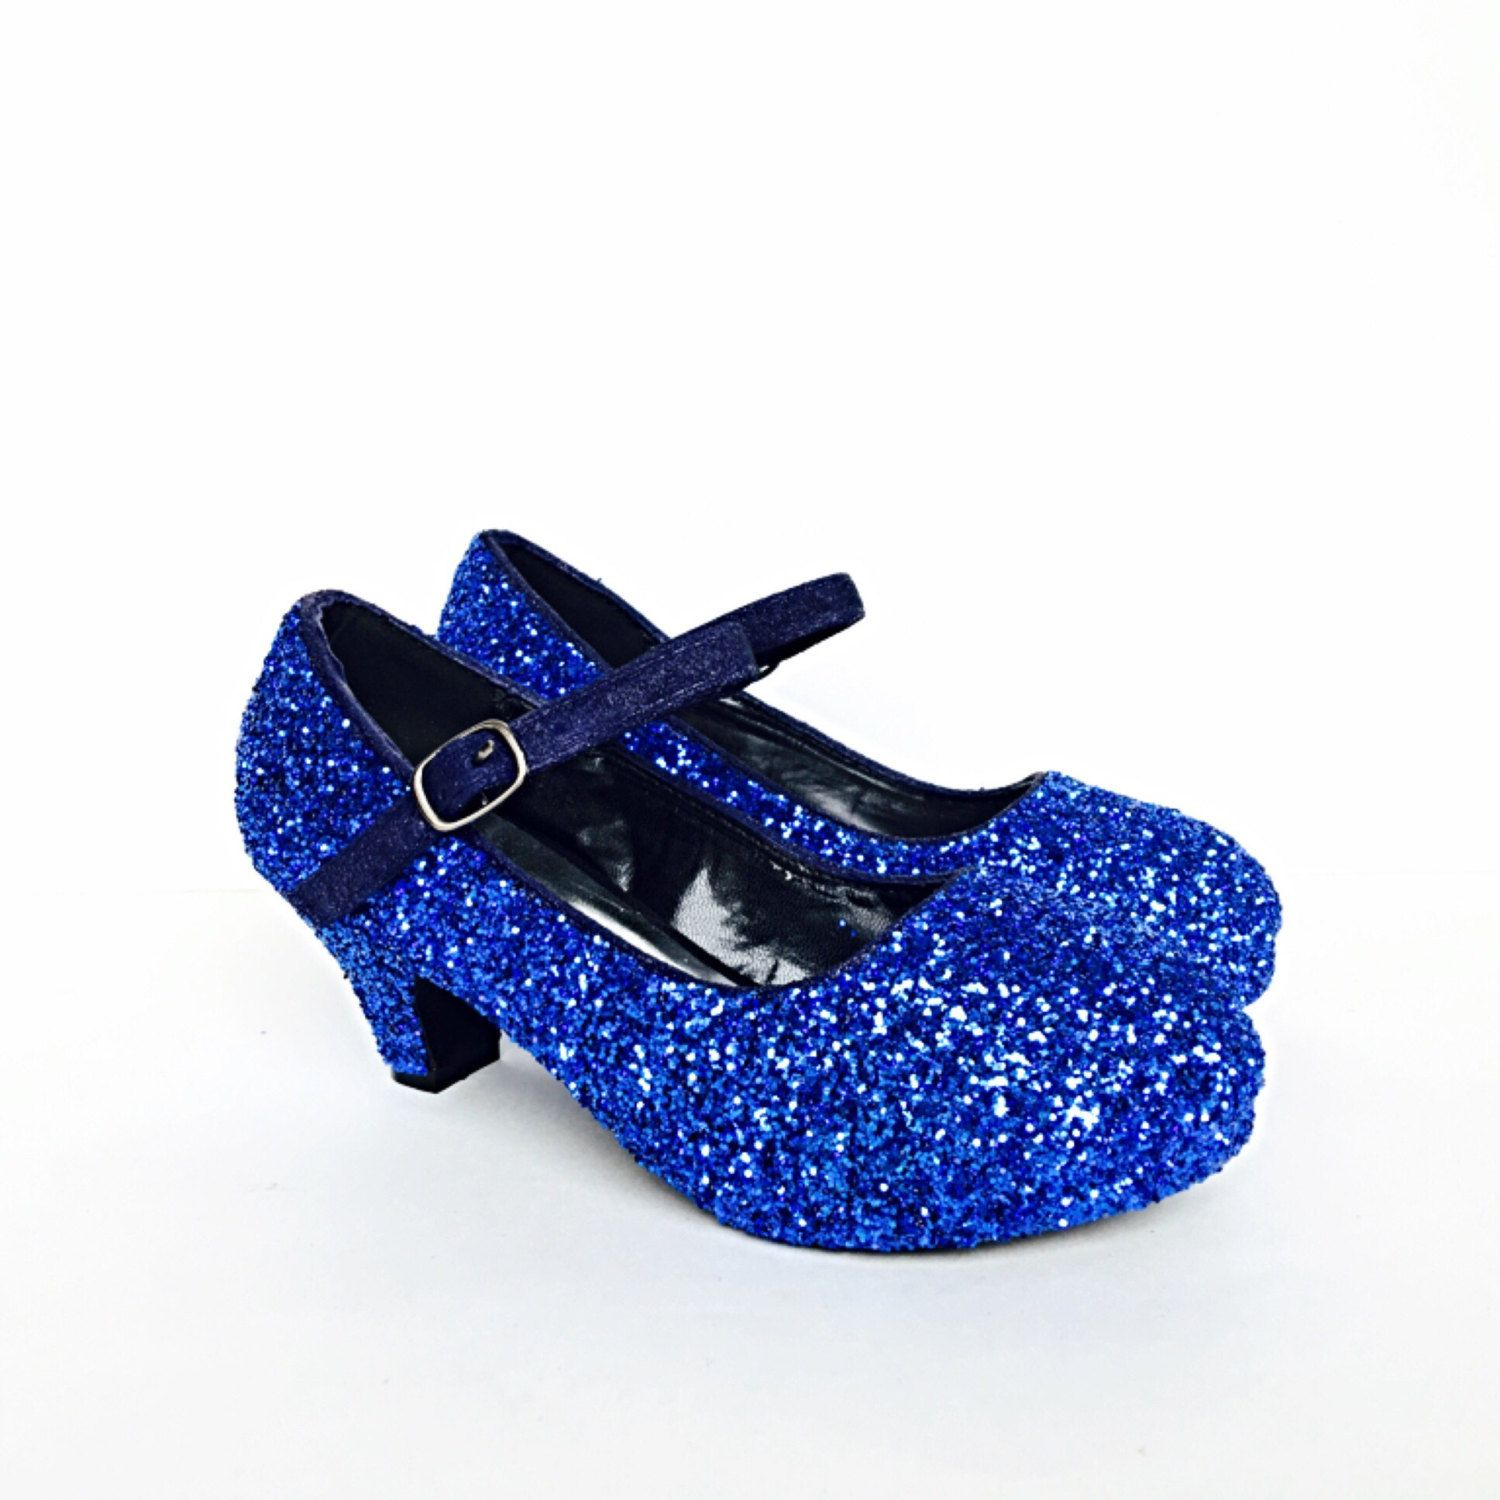 Shop our latest collection of Girls Glitter & Sparkle Shoes and get the best pair for your little one! Find comfortable designer & brand pieces for children, in many sizes and styles, for babies, toddlers, tweens or even juniors, all available in many colors such as white, ivory, black, red, tan, pink and more!